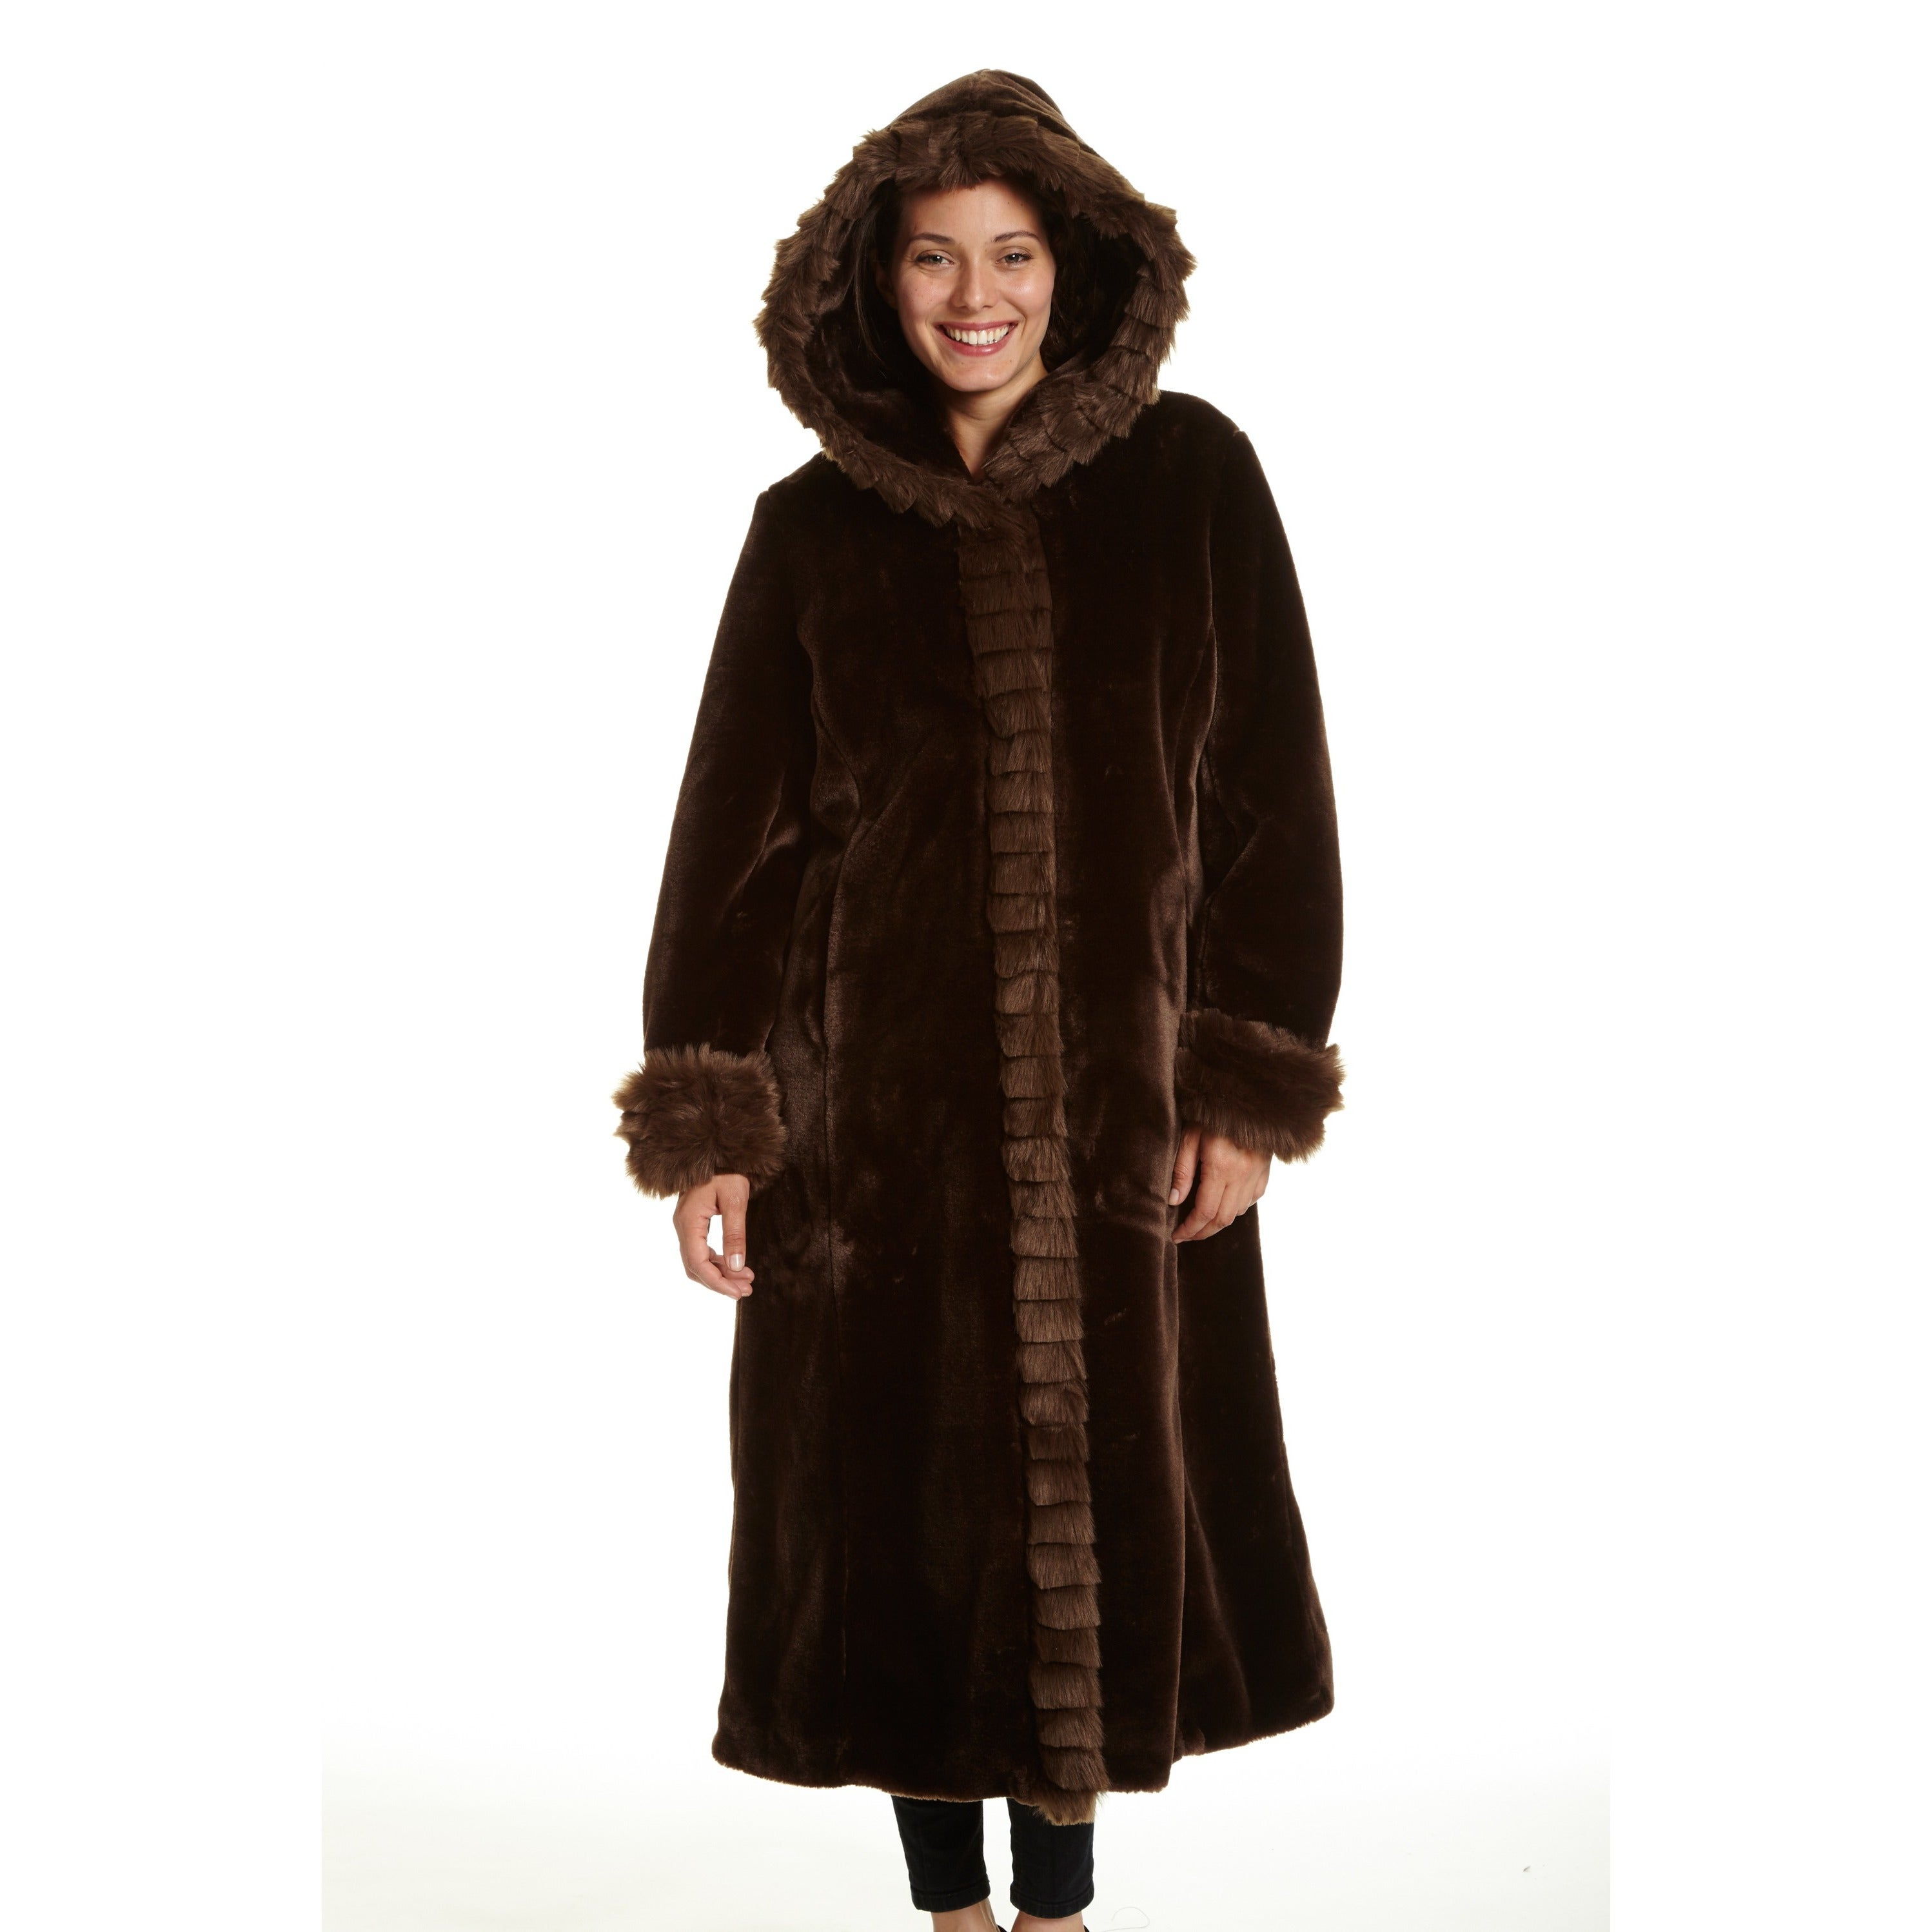 80e687b55 Excelled Women's Faux Fur Hooded Full Length Coat